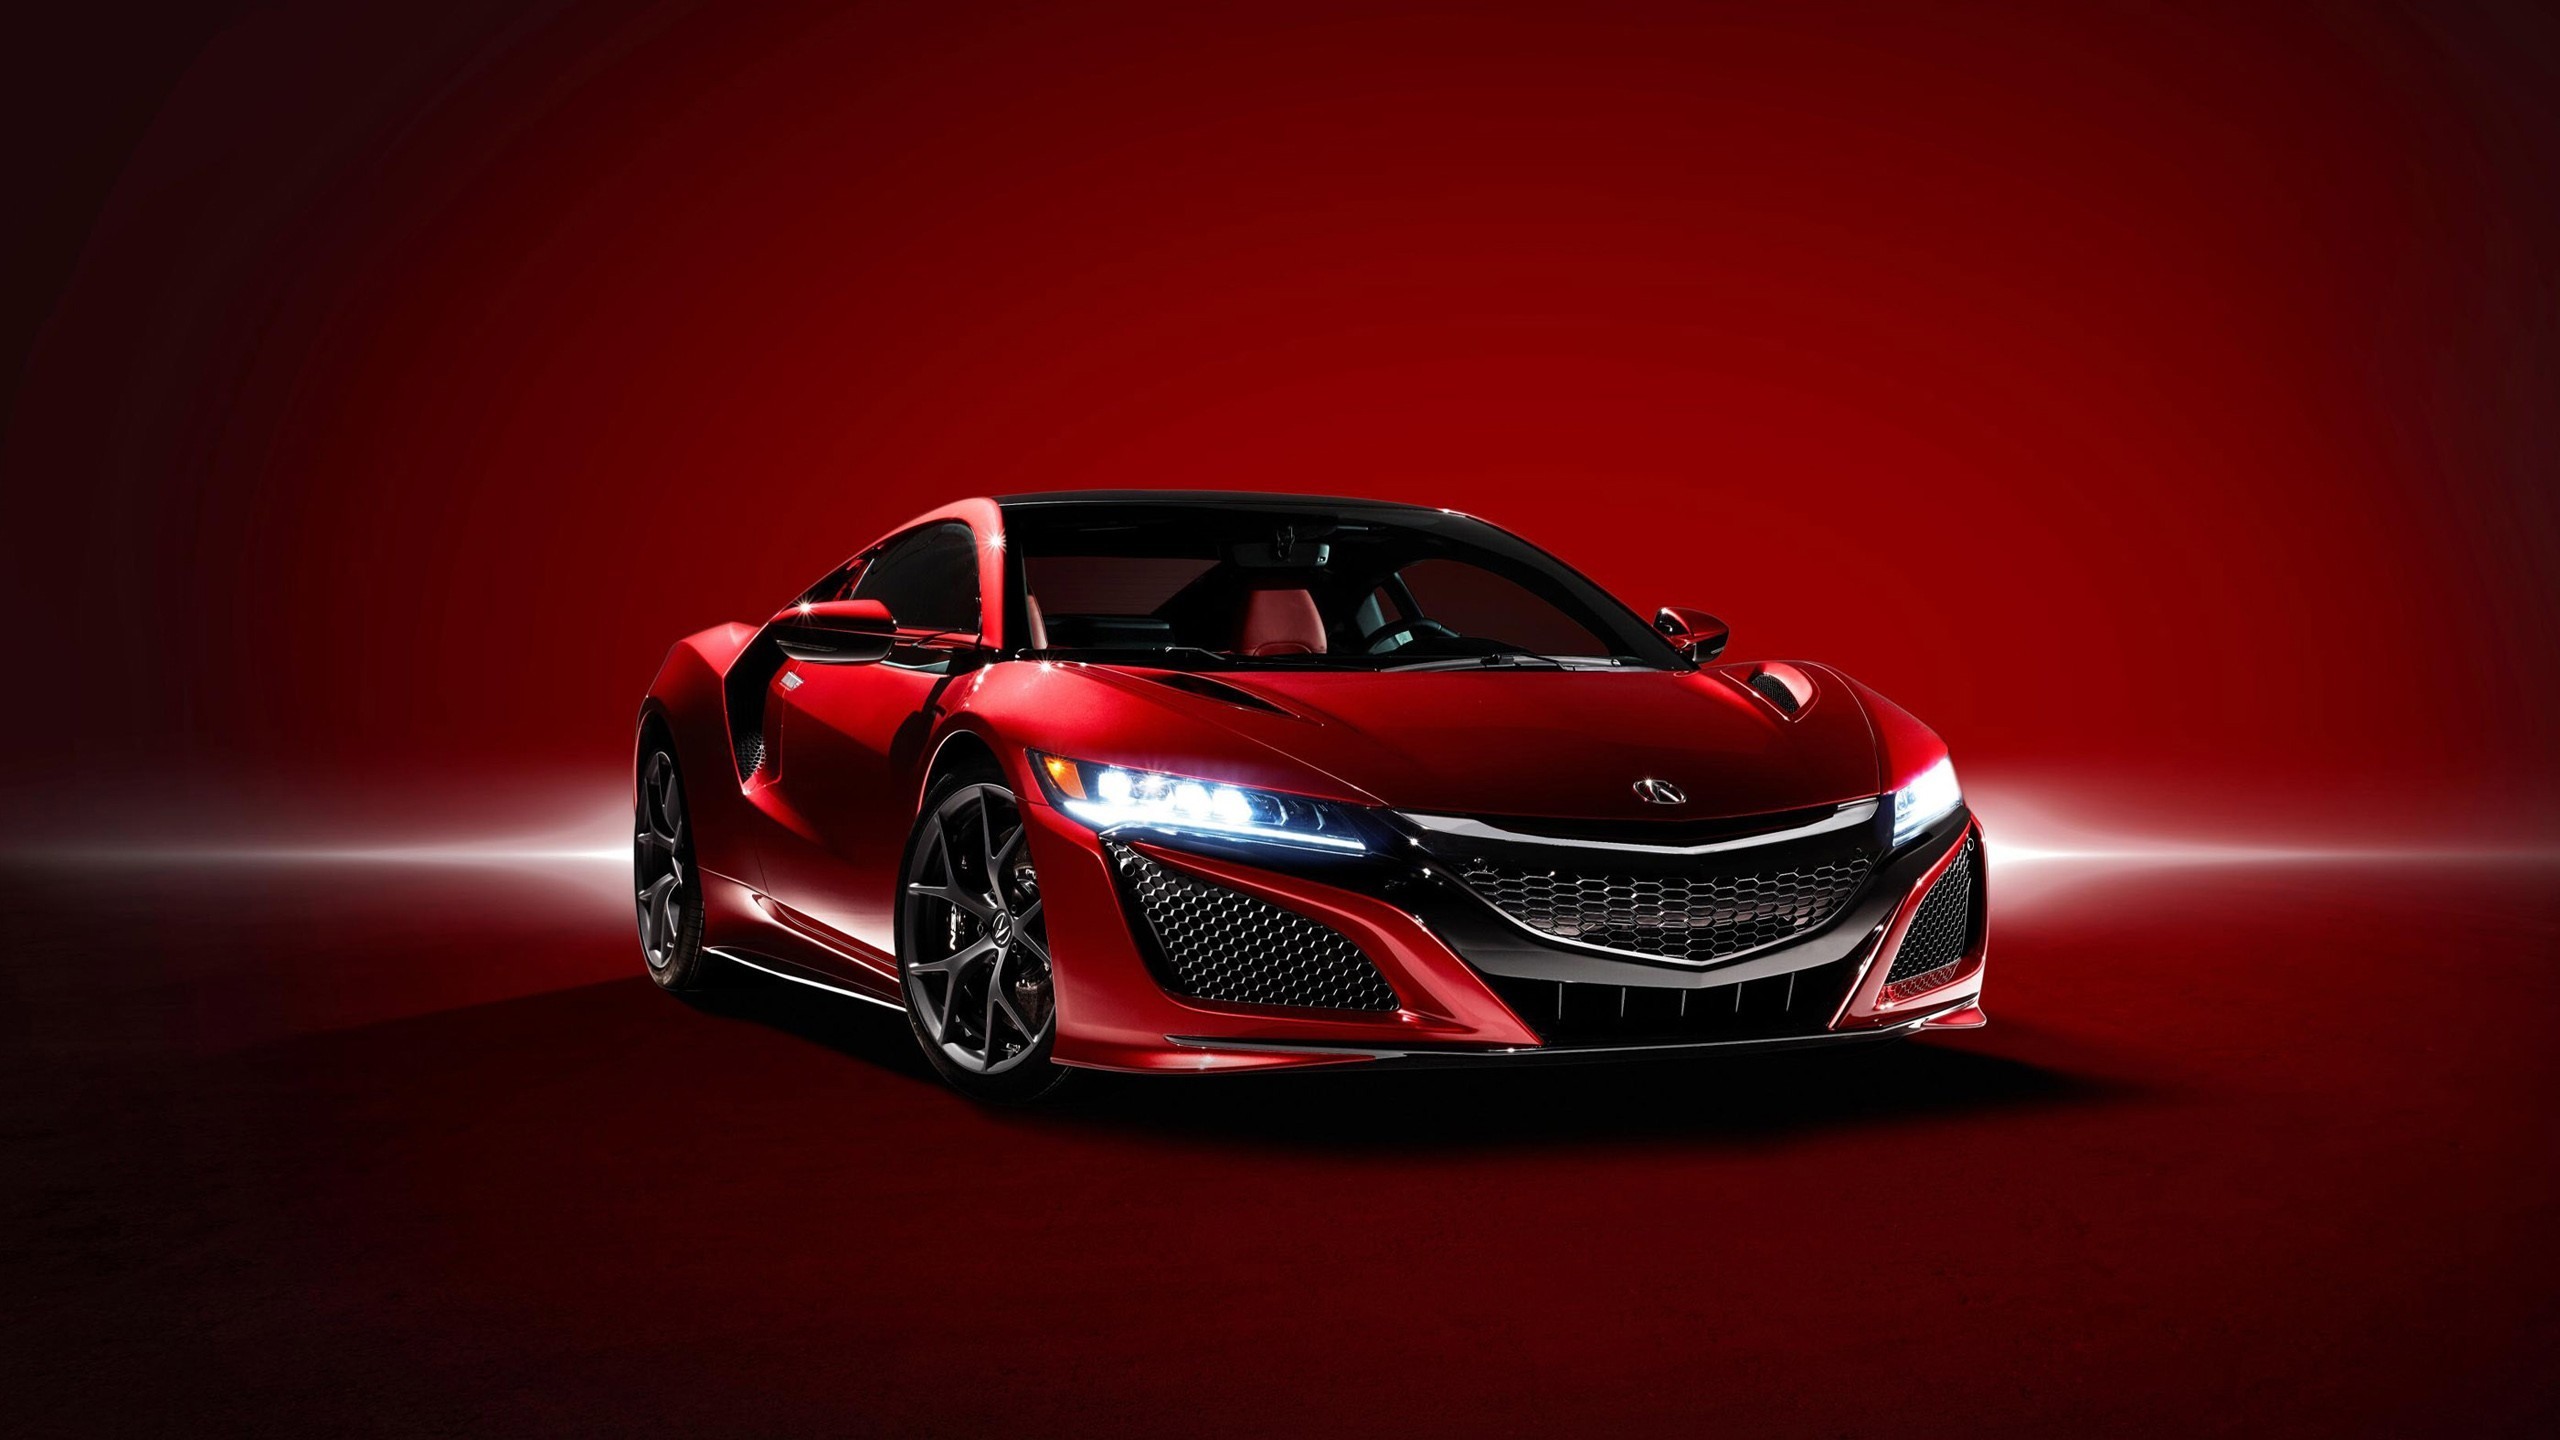 Supercars Hd Wallpapers 1080p 76 Images